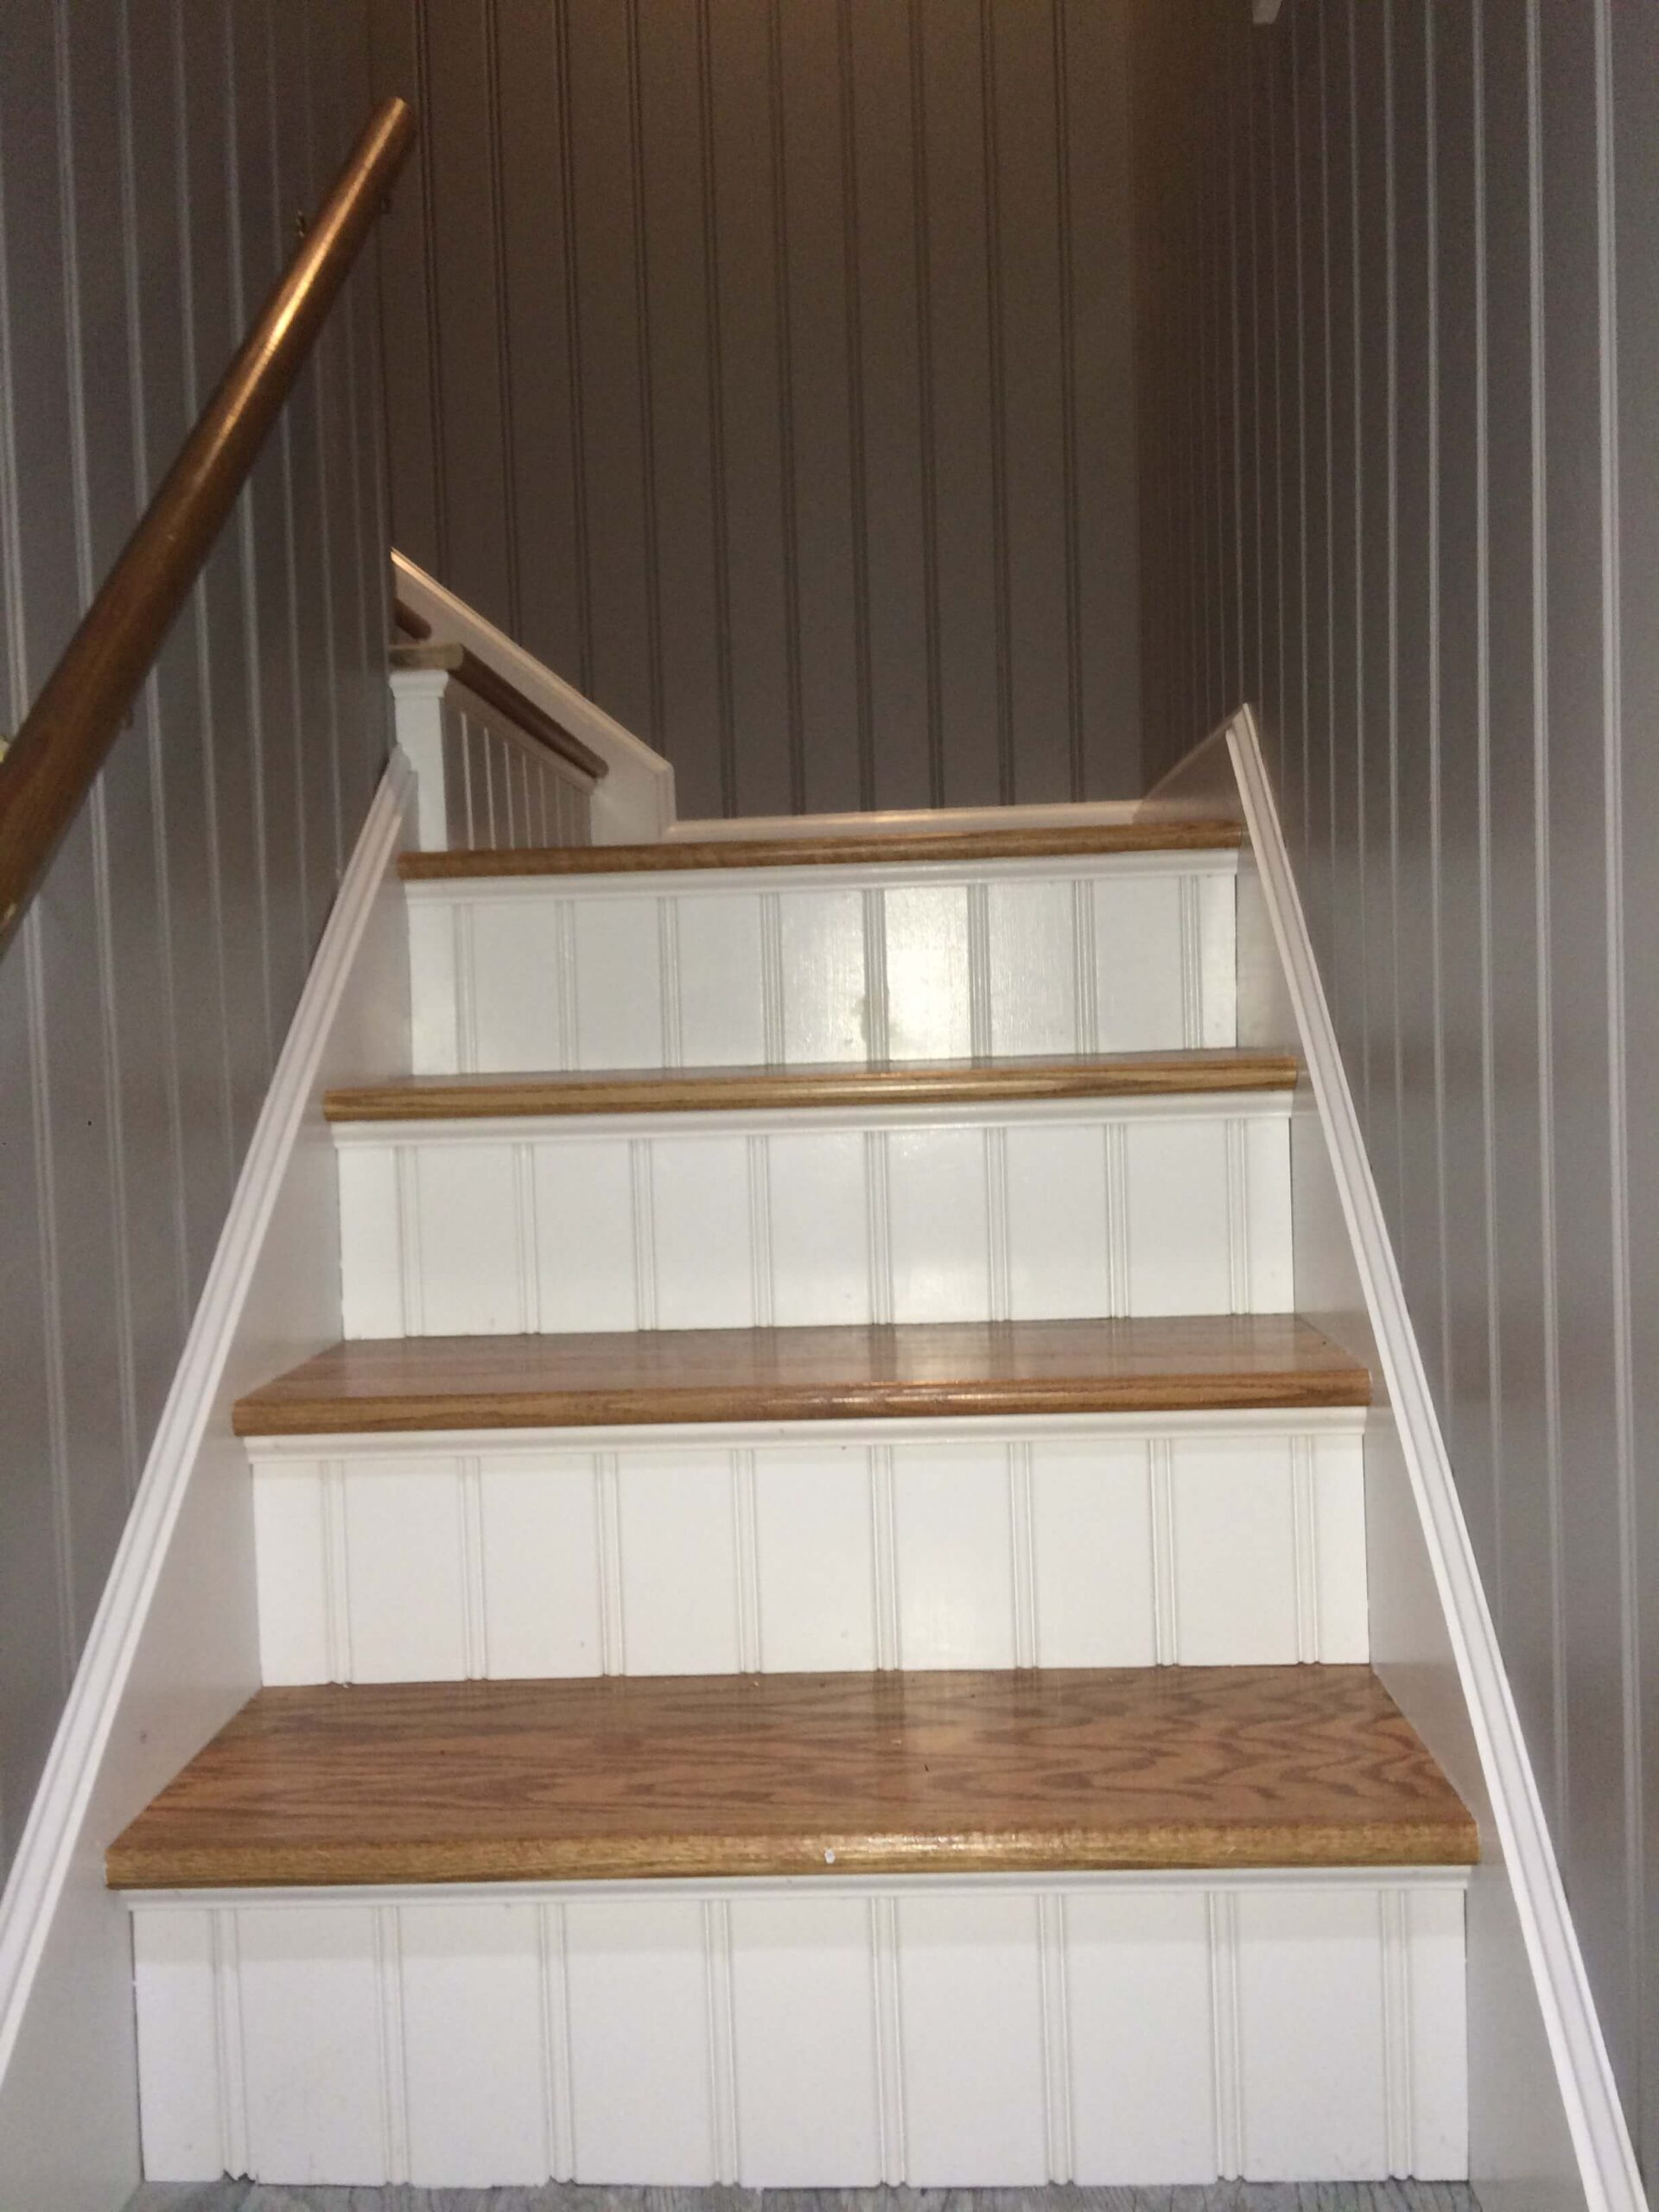 American Beadboard on staircase walls and step risers